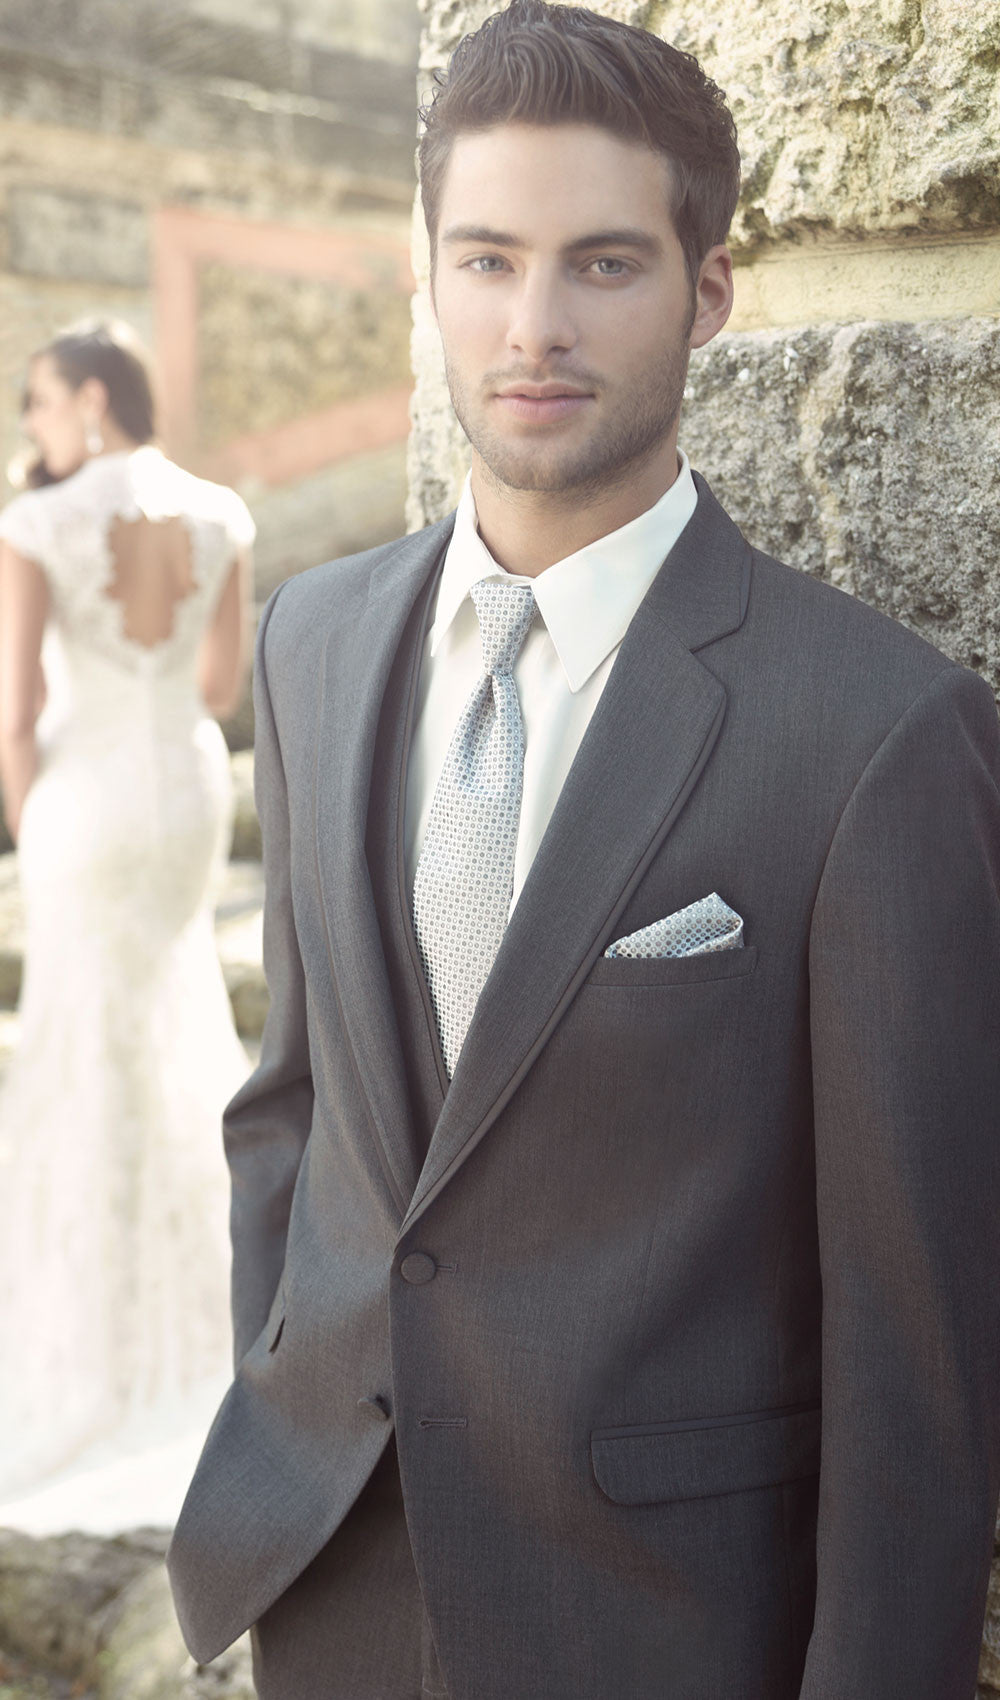 Allure Men - STYLE CHARCOAL GREY ALLURE Allure Men- Schaffer's Bridal in Des Moines & Phoenix